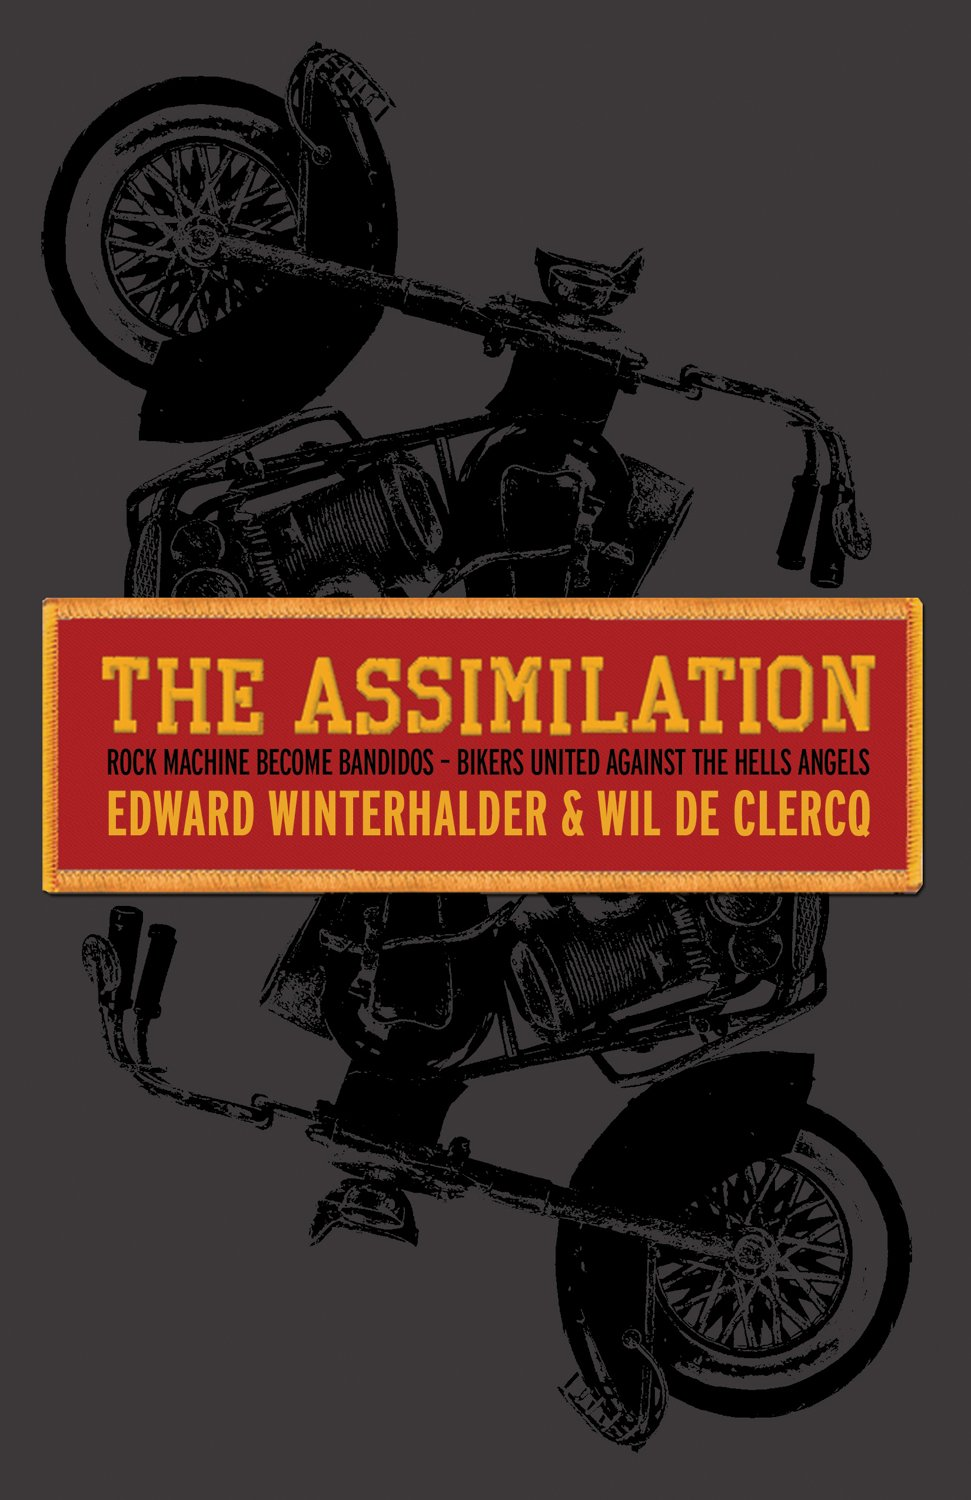 The Assimilation: Rock Machine Become Bandidos: Bikers